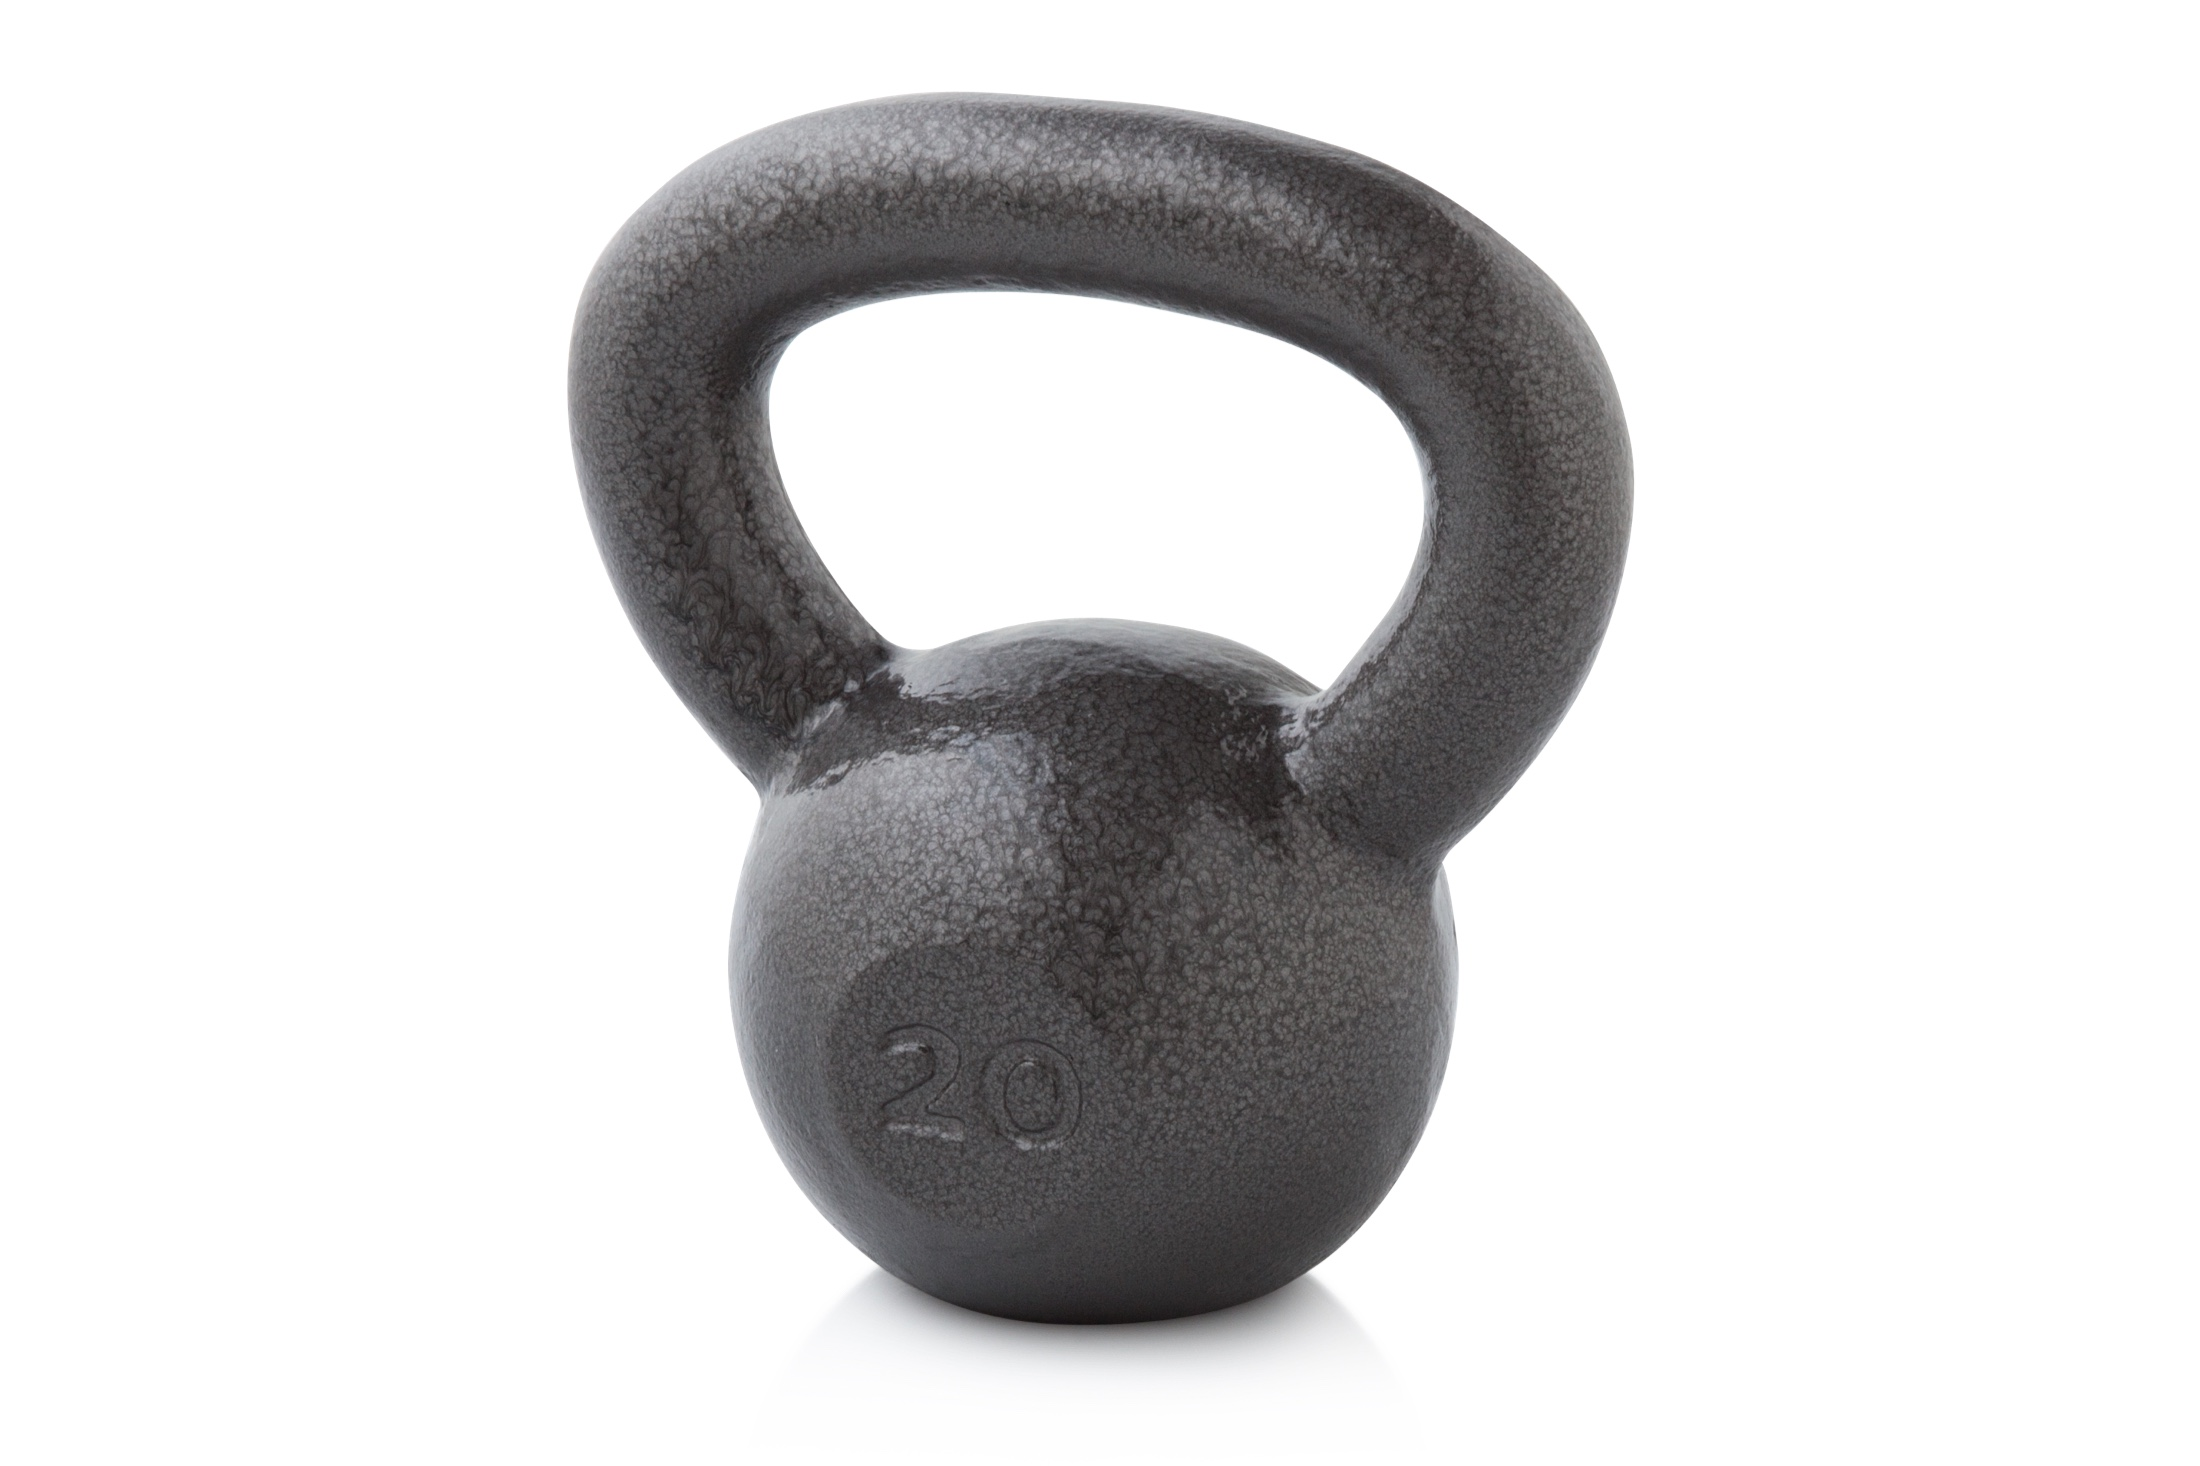 NordicTrack Gold's Gym 20 lb. Kettlebell gallery image 1